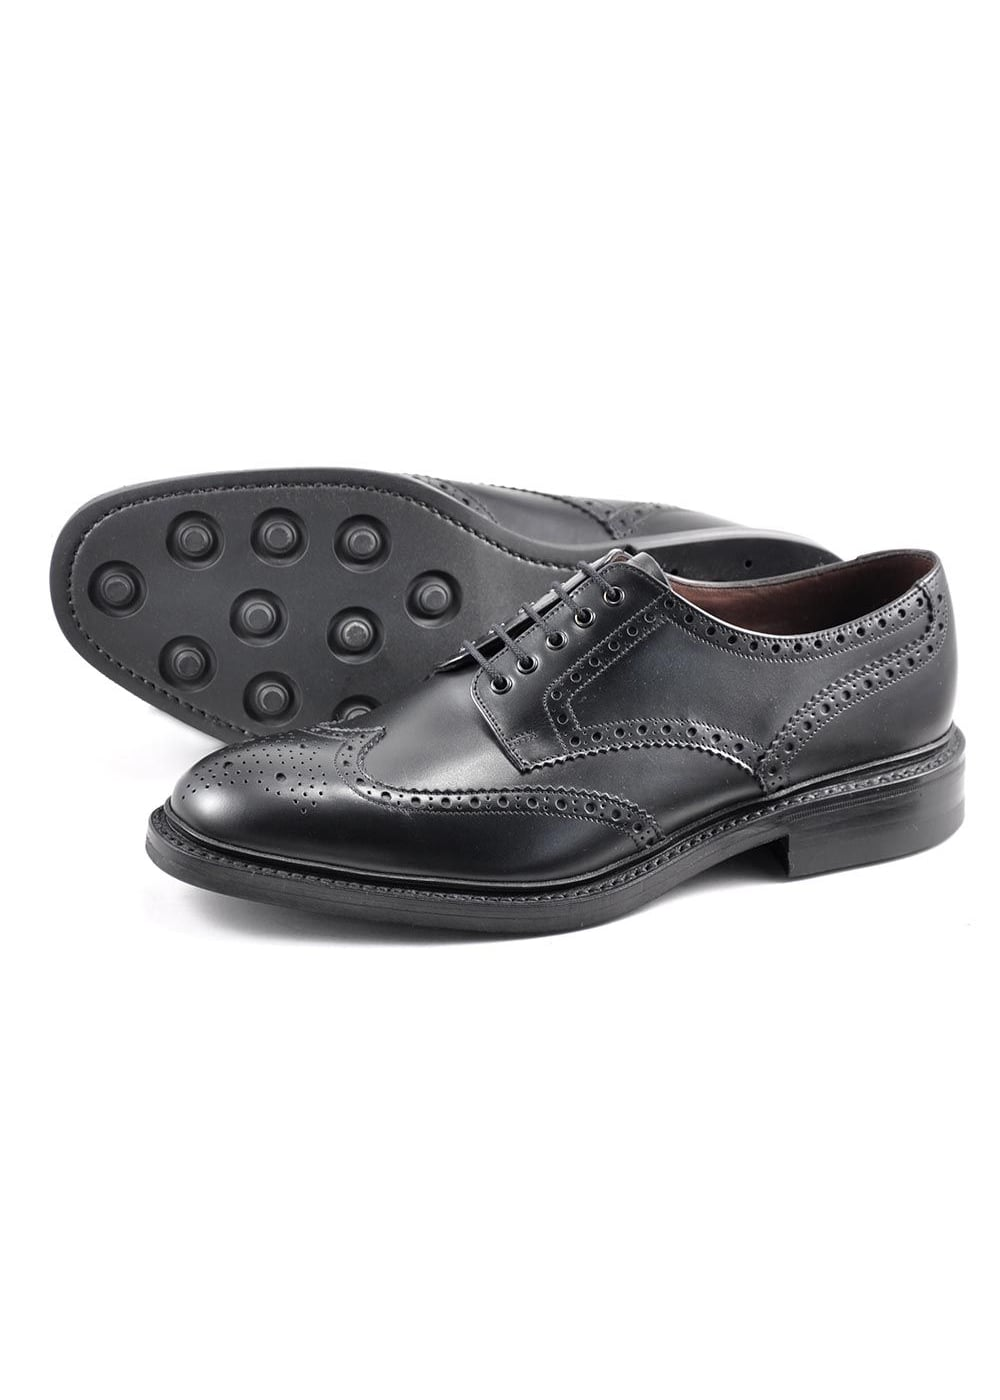 Loake Chester Dainite Shoes  Large Image